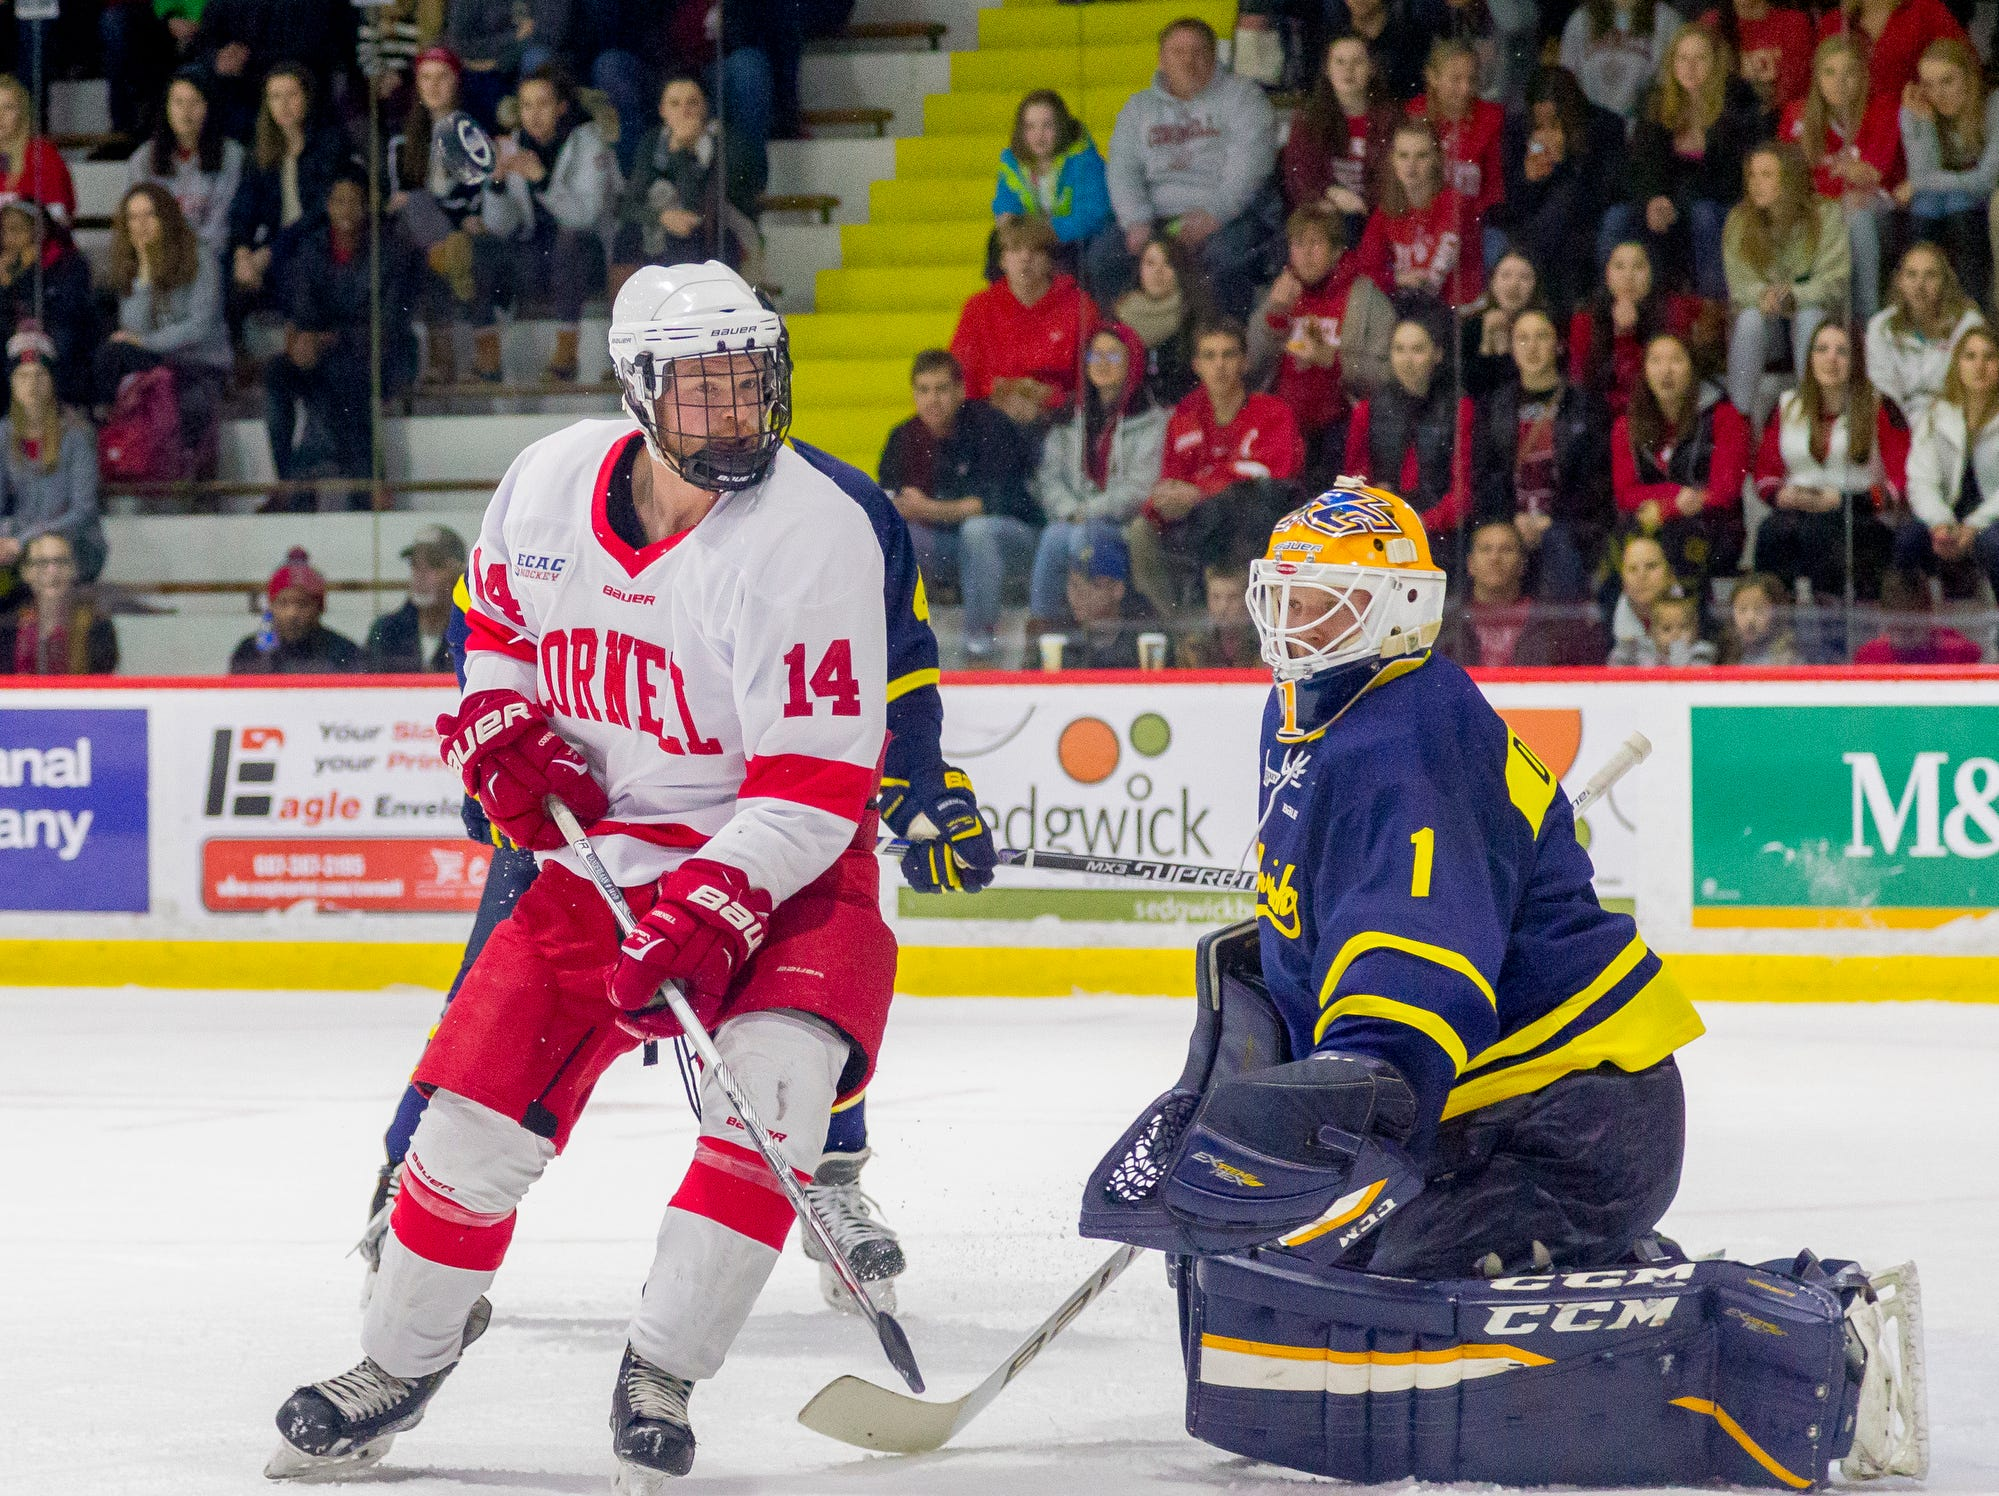 2016: Cornell's Mitch Vanderlaan can't get to a puck over his head in front of Merrimack goalie Colin Delia during the first period of their game Saturday night at Lynah Rink on the Cornell University campus.